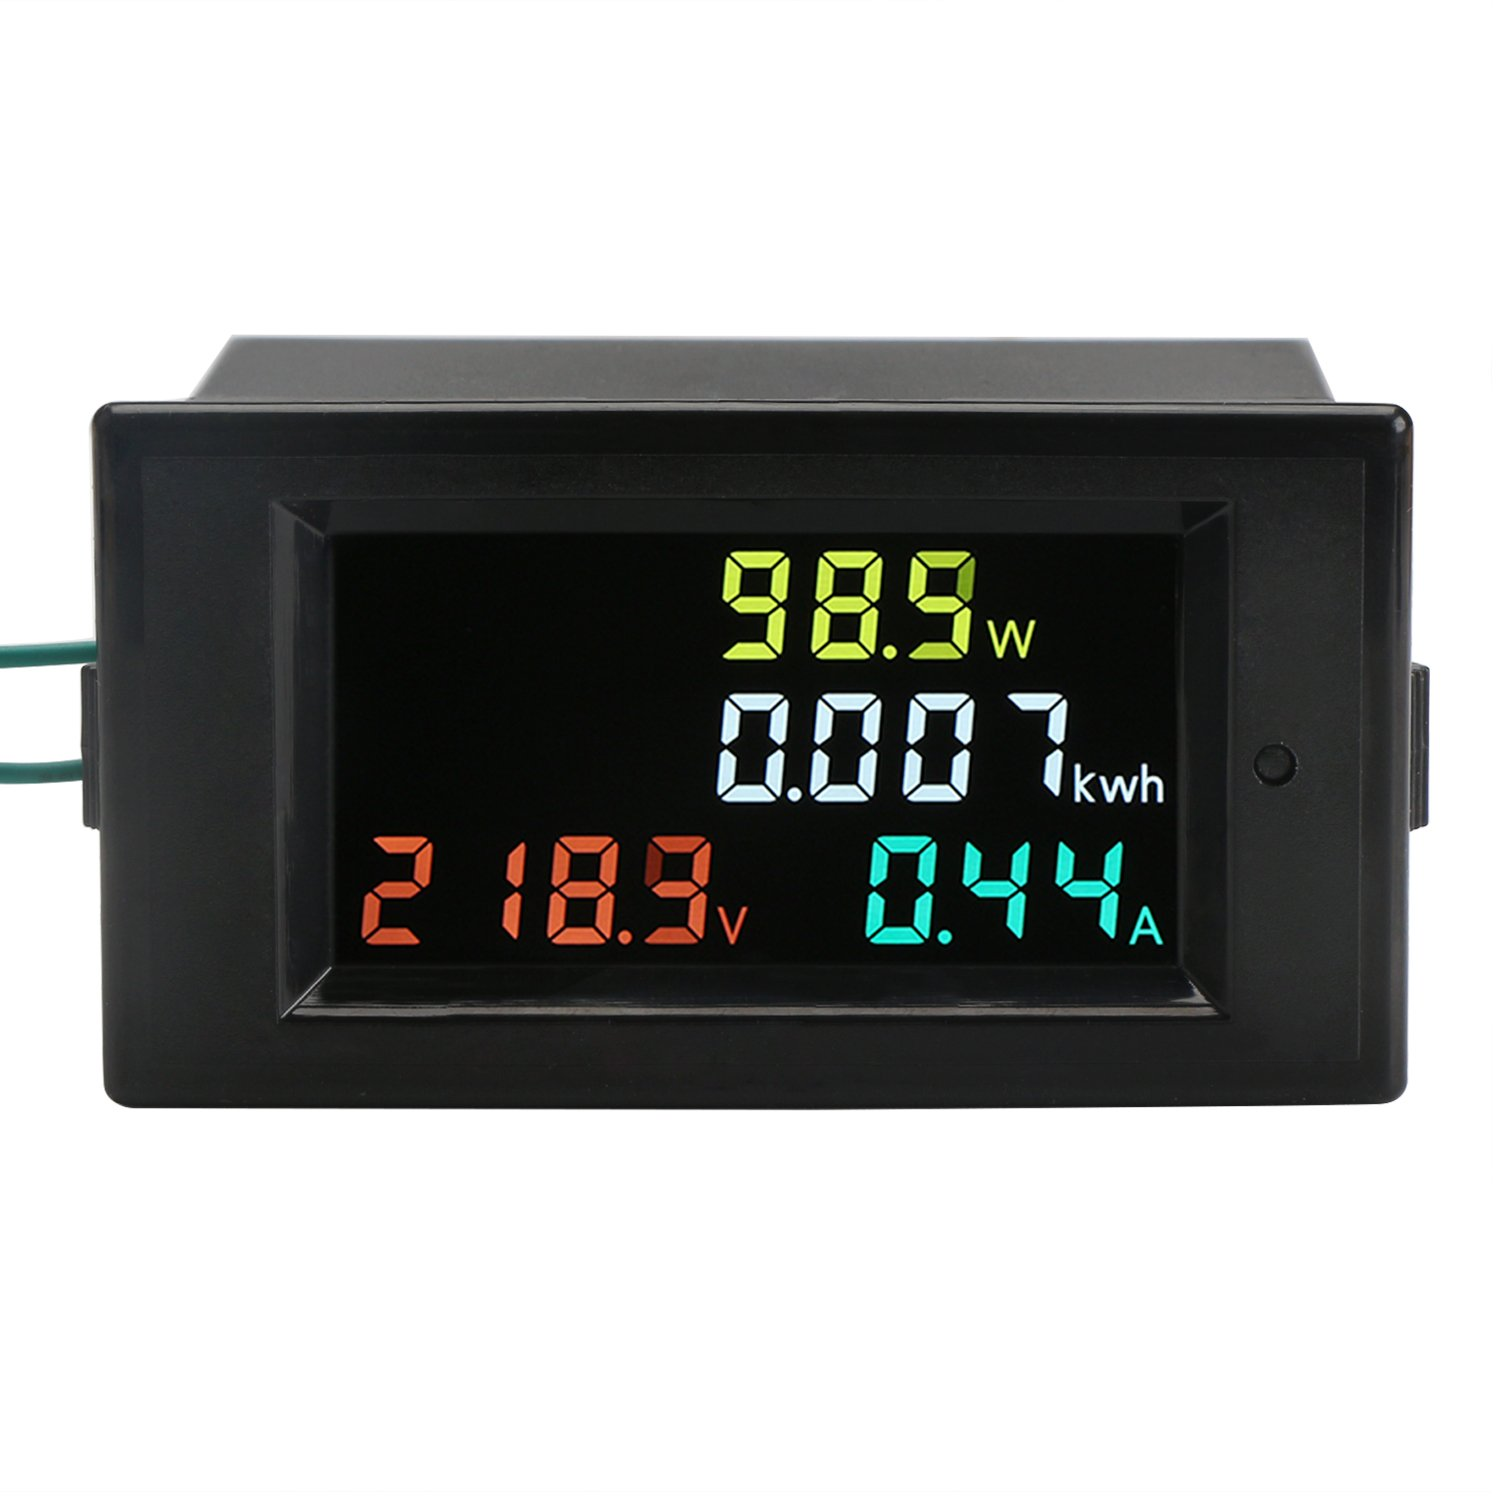 AC Power Meter, DROK AC 80-300V 100A Voltage Current Color LCD Display  Panel, Digital Voltmeter Ammeter Watt Active Power Energy Monitor  Multimeter Volt Amp ...